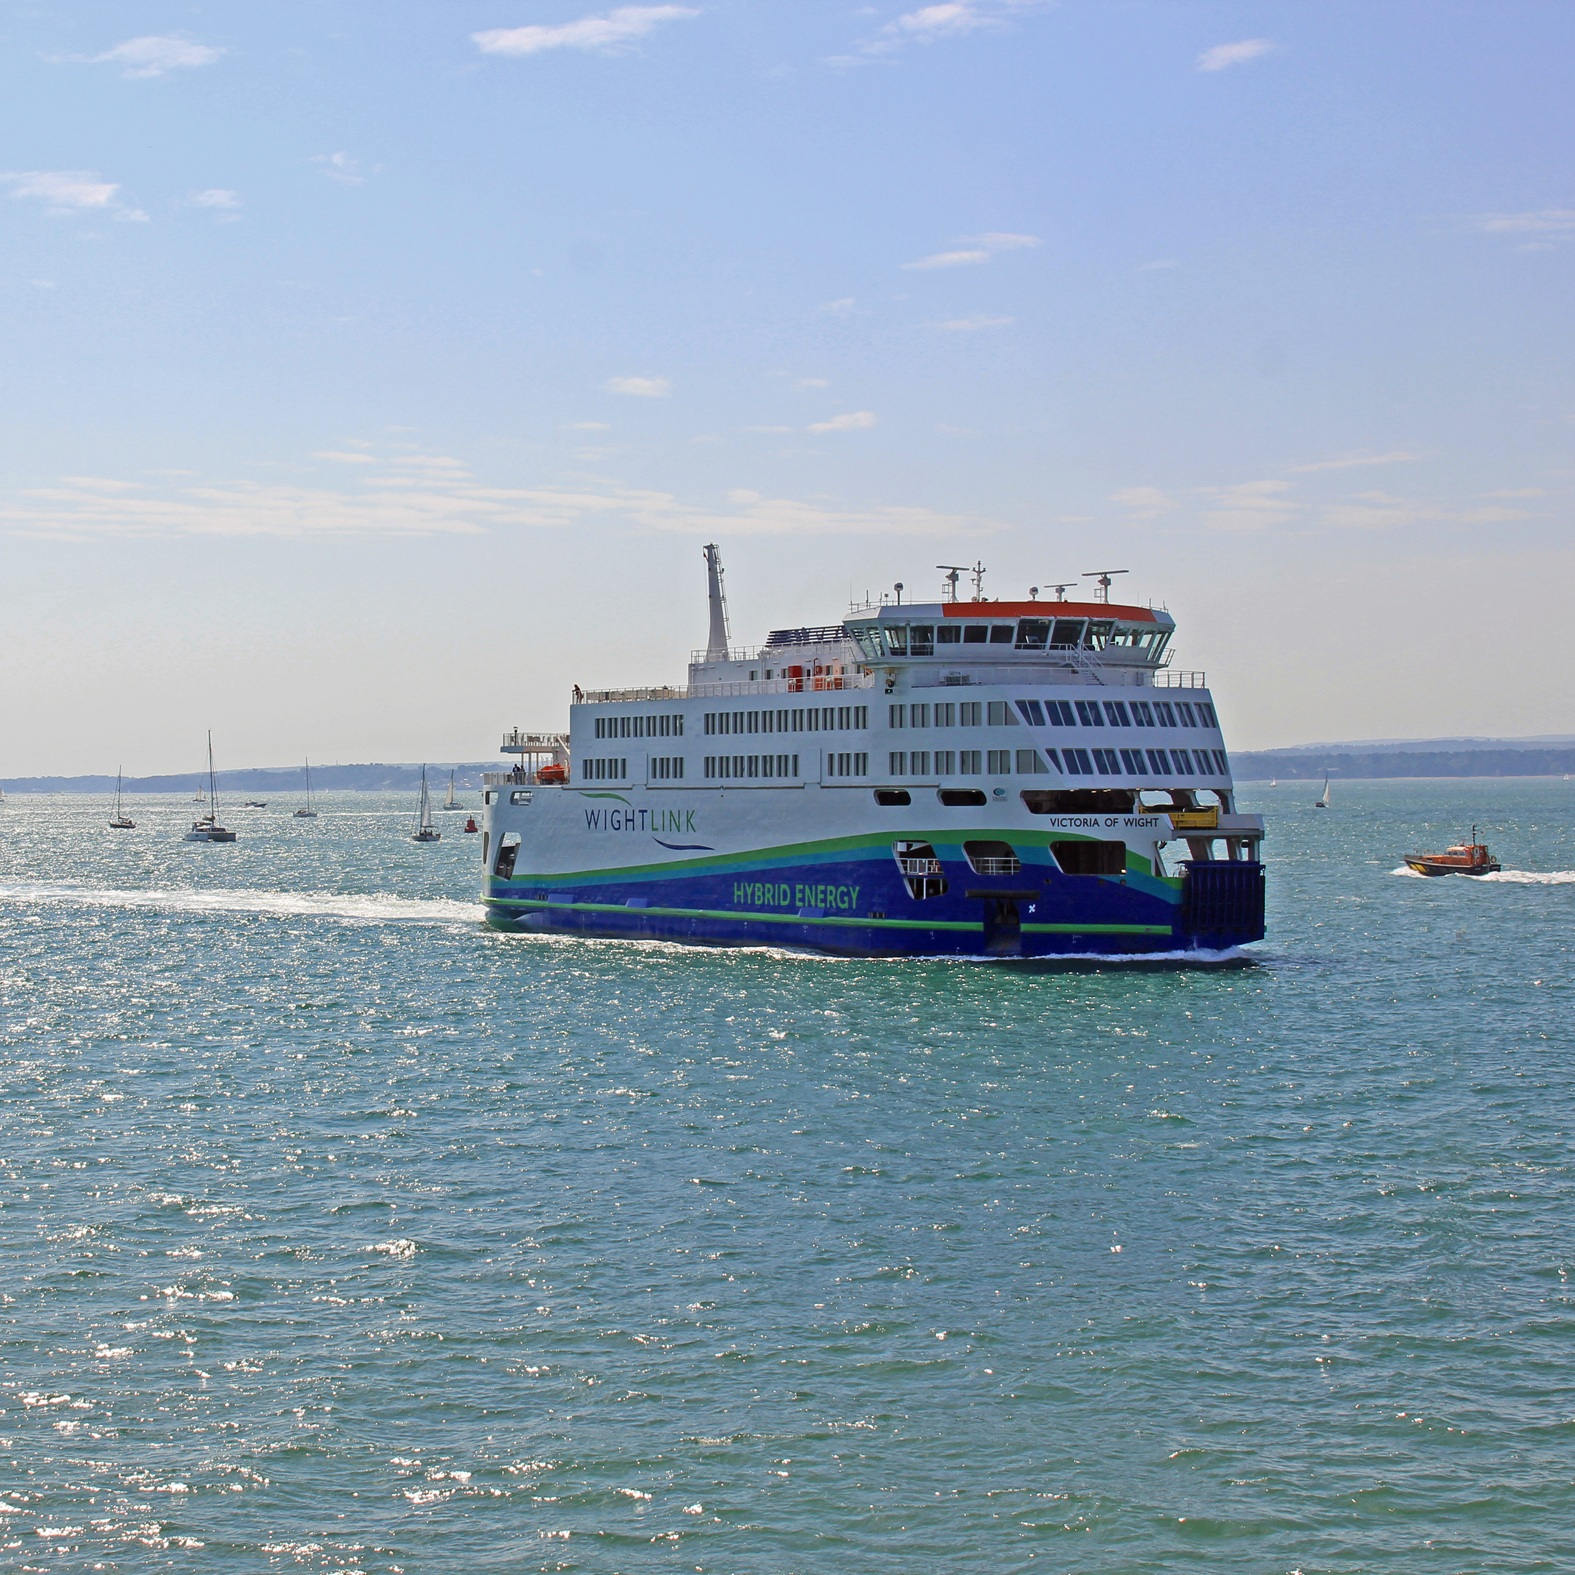 Wightlink Ferries Due Diligence - Ferries & Ports